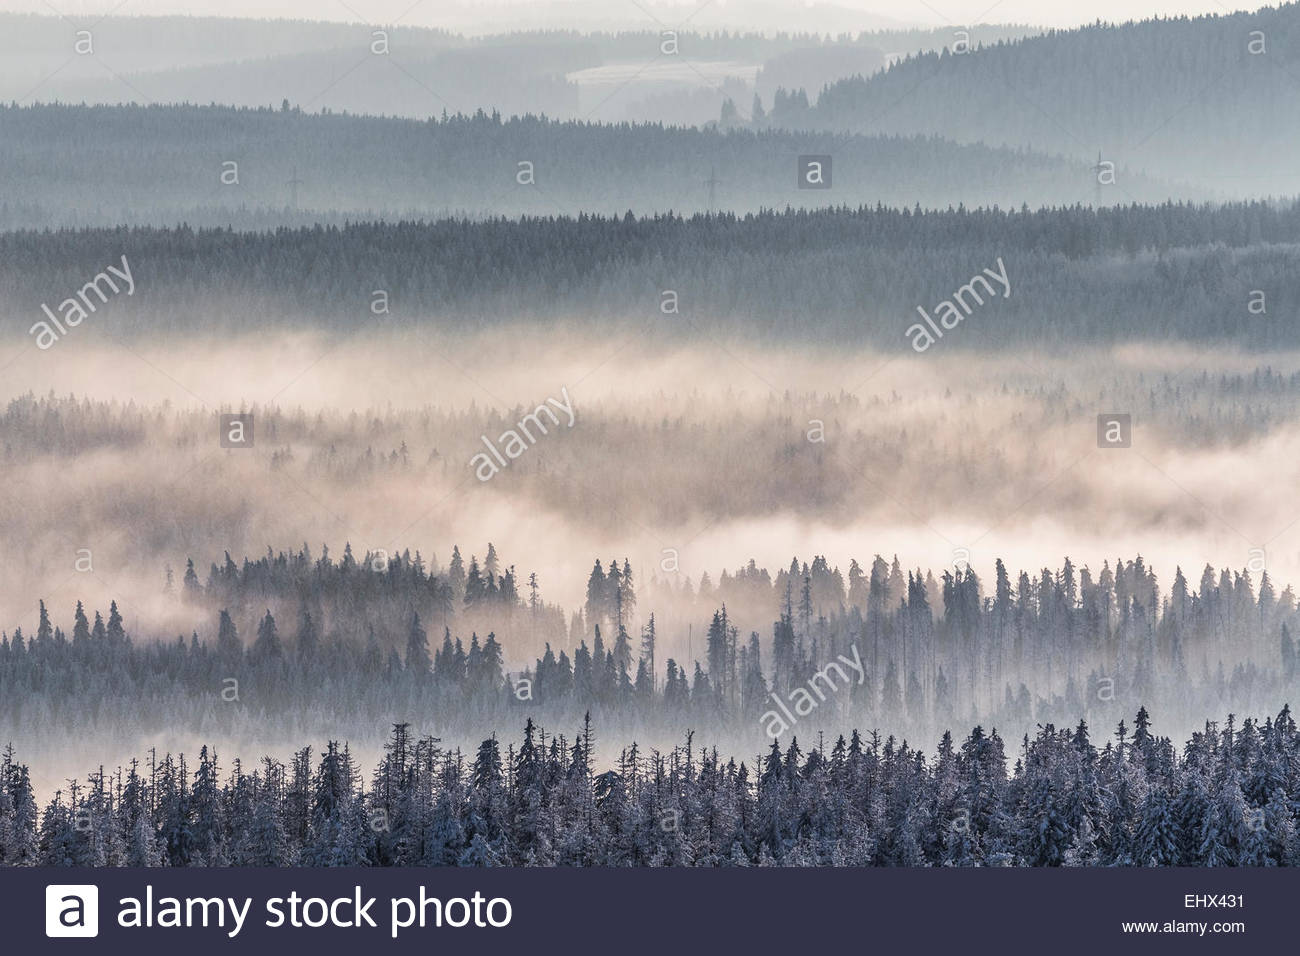 Germany, Saxony-Anhalt, Harz National Park, Coniferous forest and waft of mist in winter - Stock Image